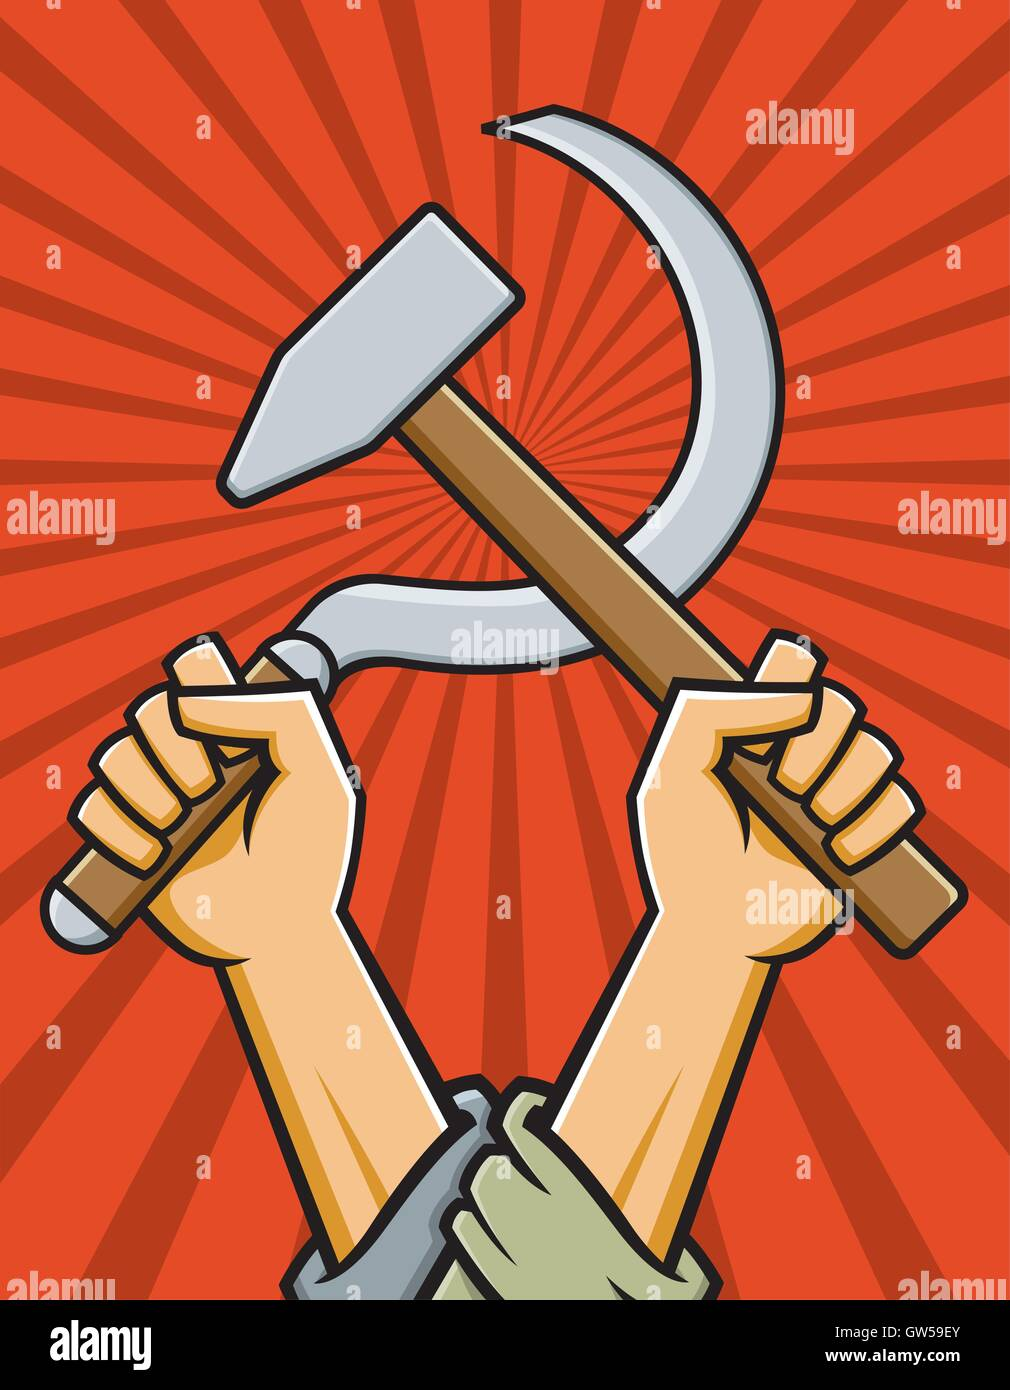 Hammer and Sickle Vector Illustration. Two arms hold a hammer and sickle aloft. Features red radial background. - Stock Vector